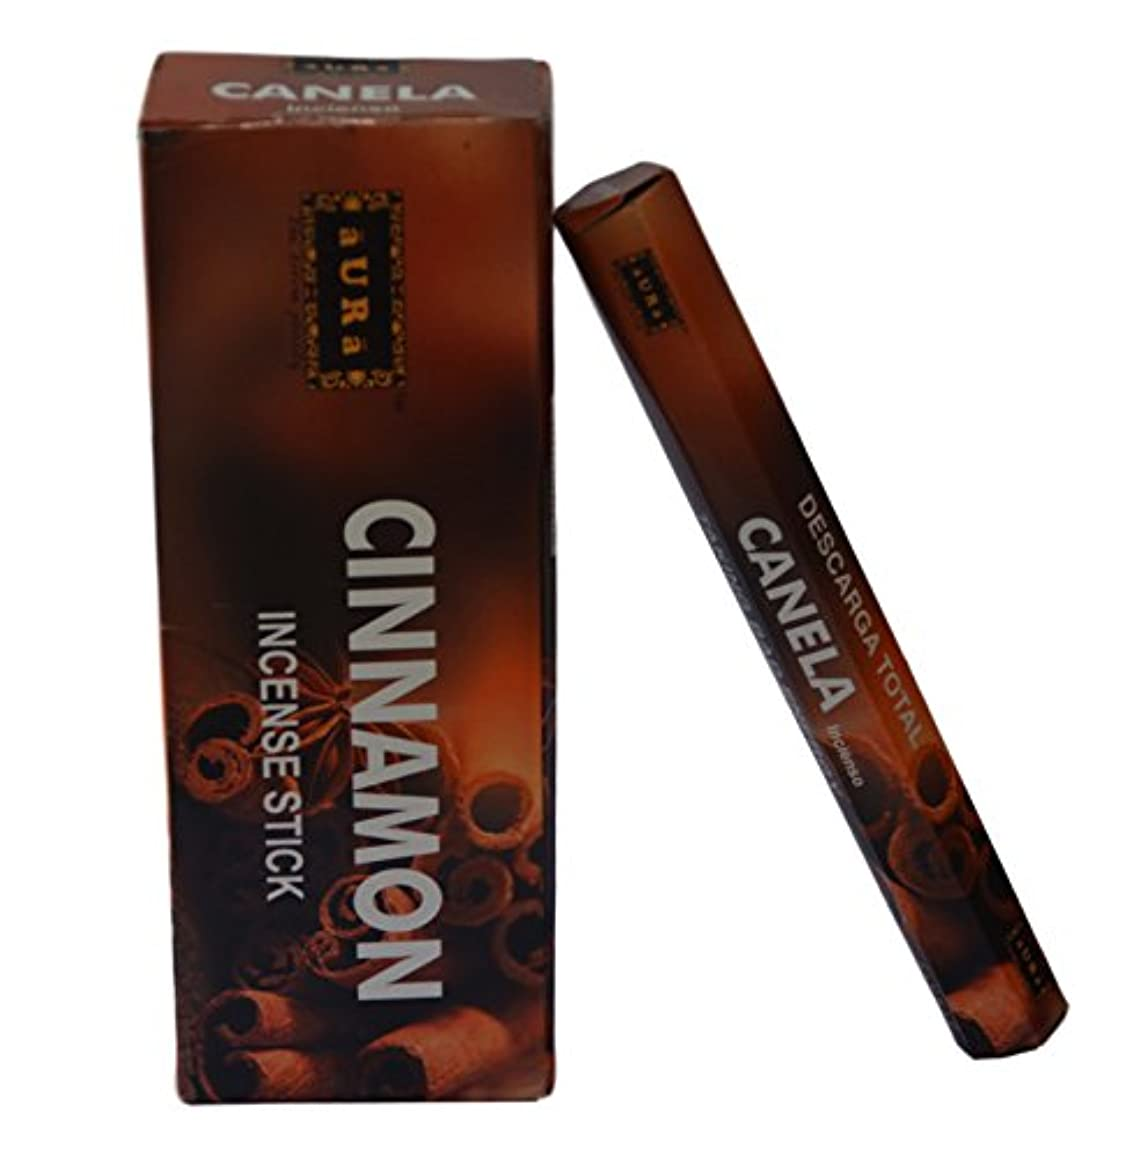 あざトリッキー活性化オーラCinnamon Scented Incense Sticks、プレミアム天然Incense Sticks、六角packing- 120 Sticks